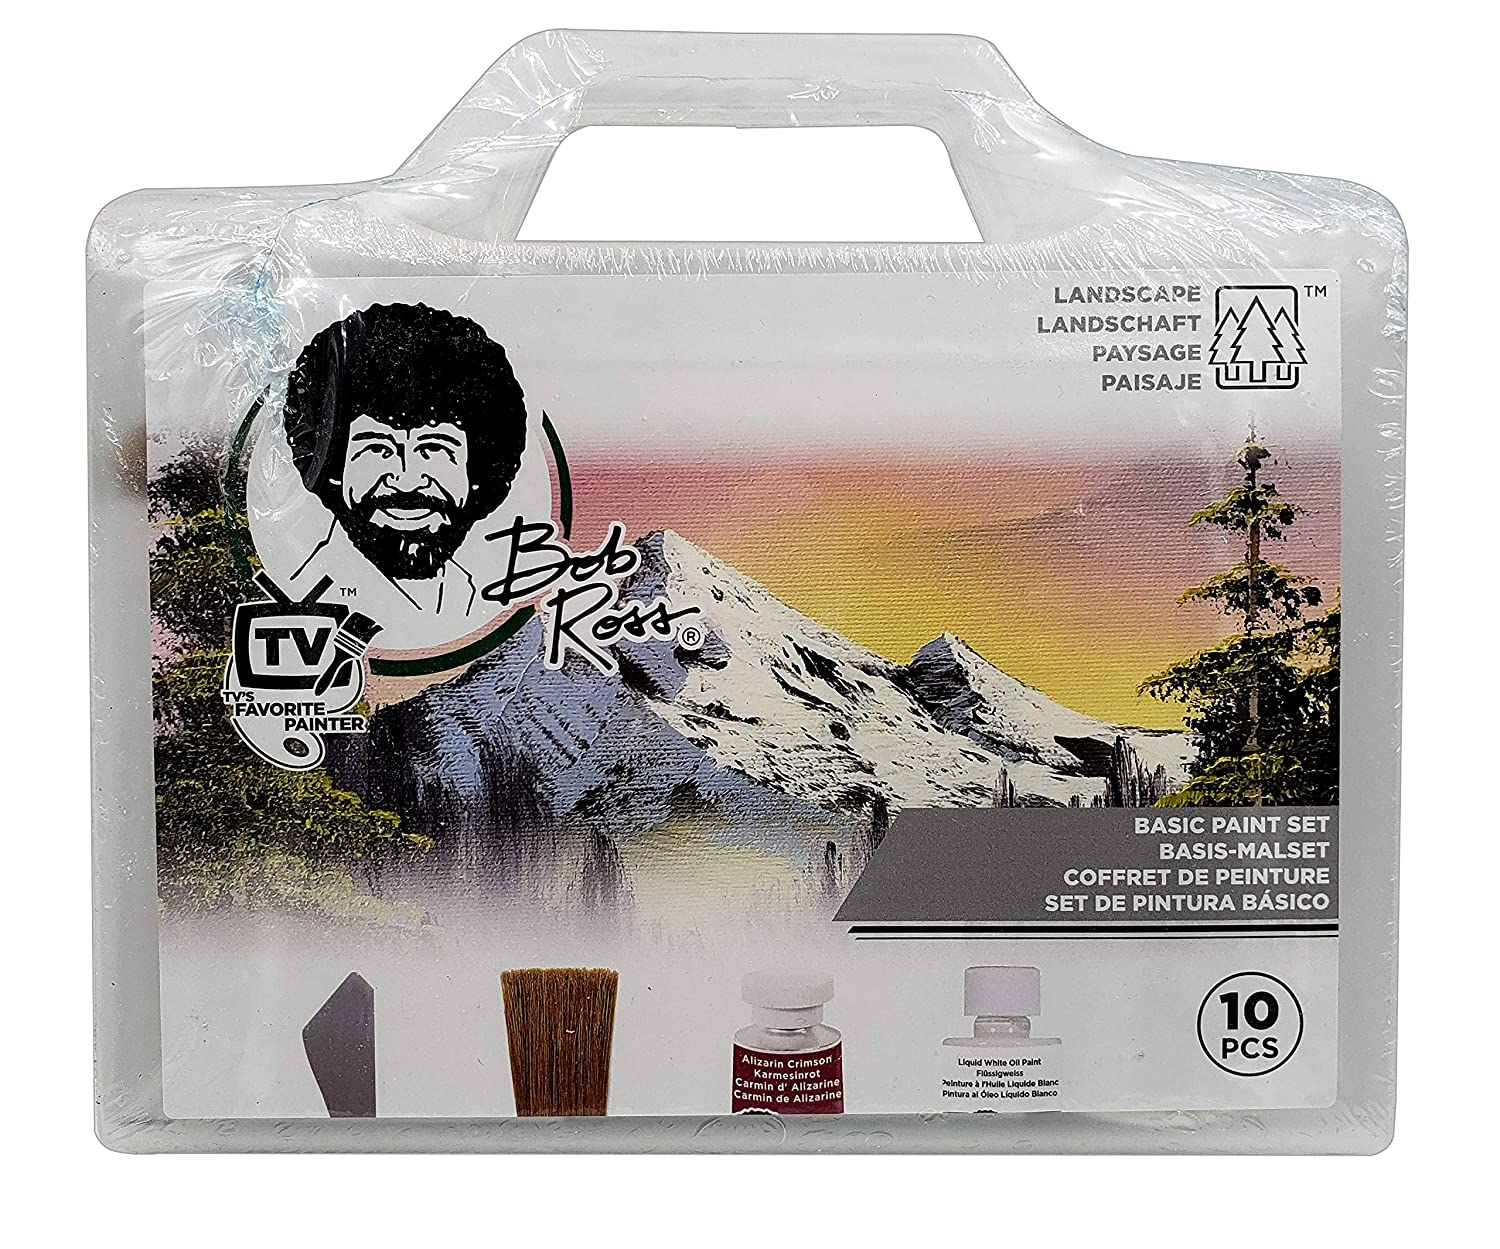 Bob Ross Basic Paint Set 10 Pieces Landscape